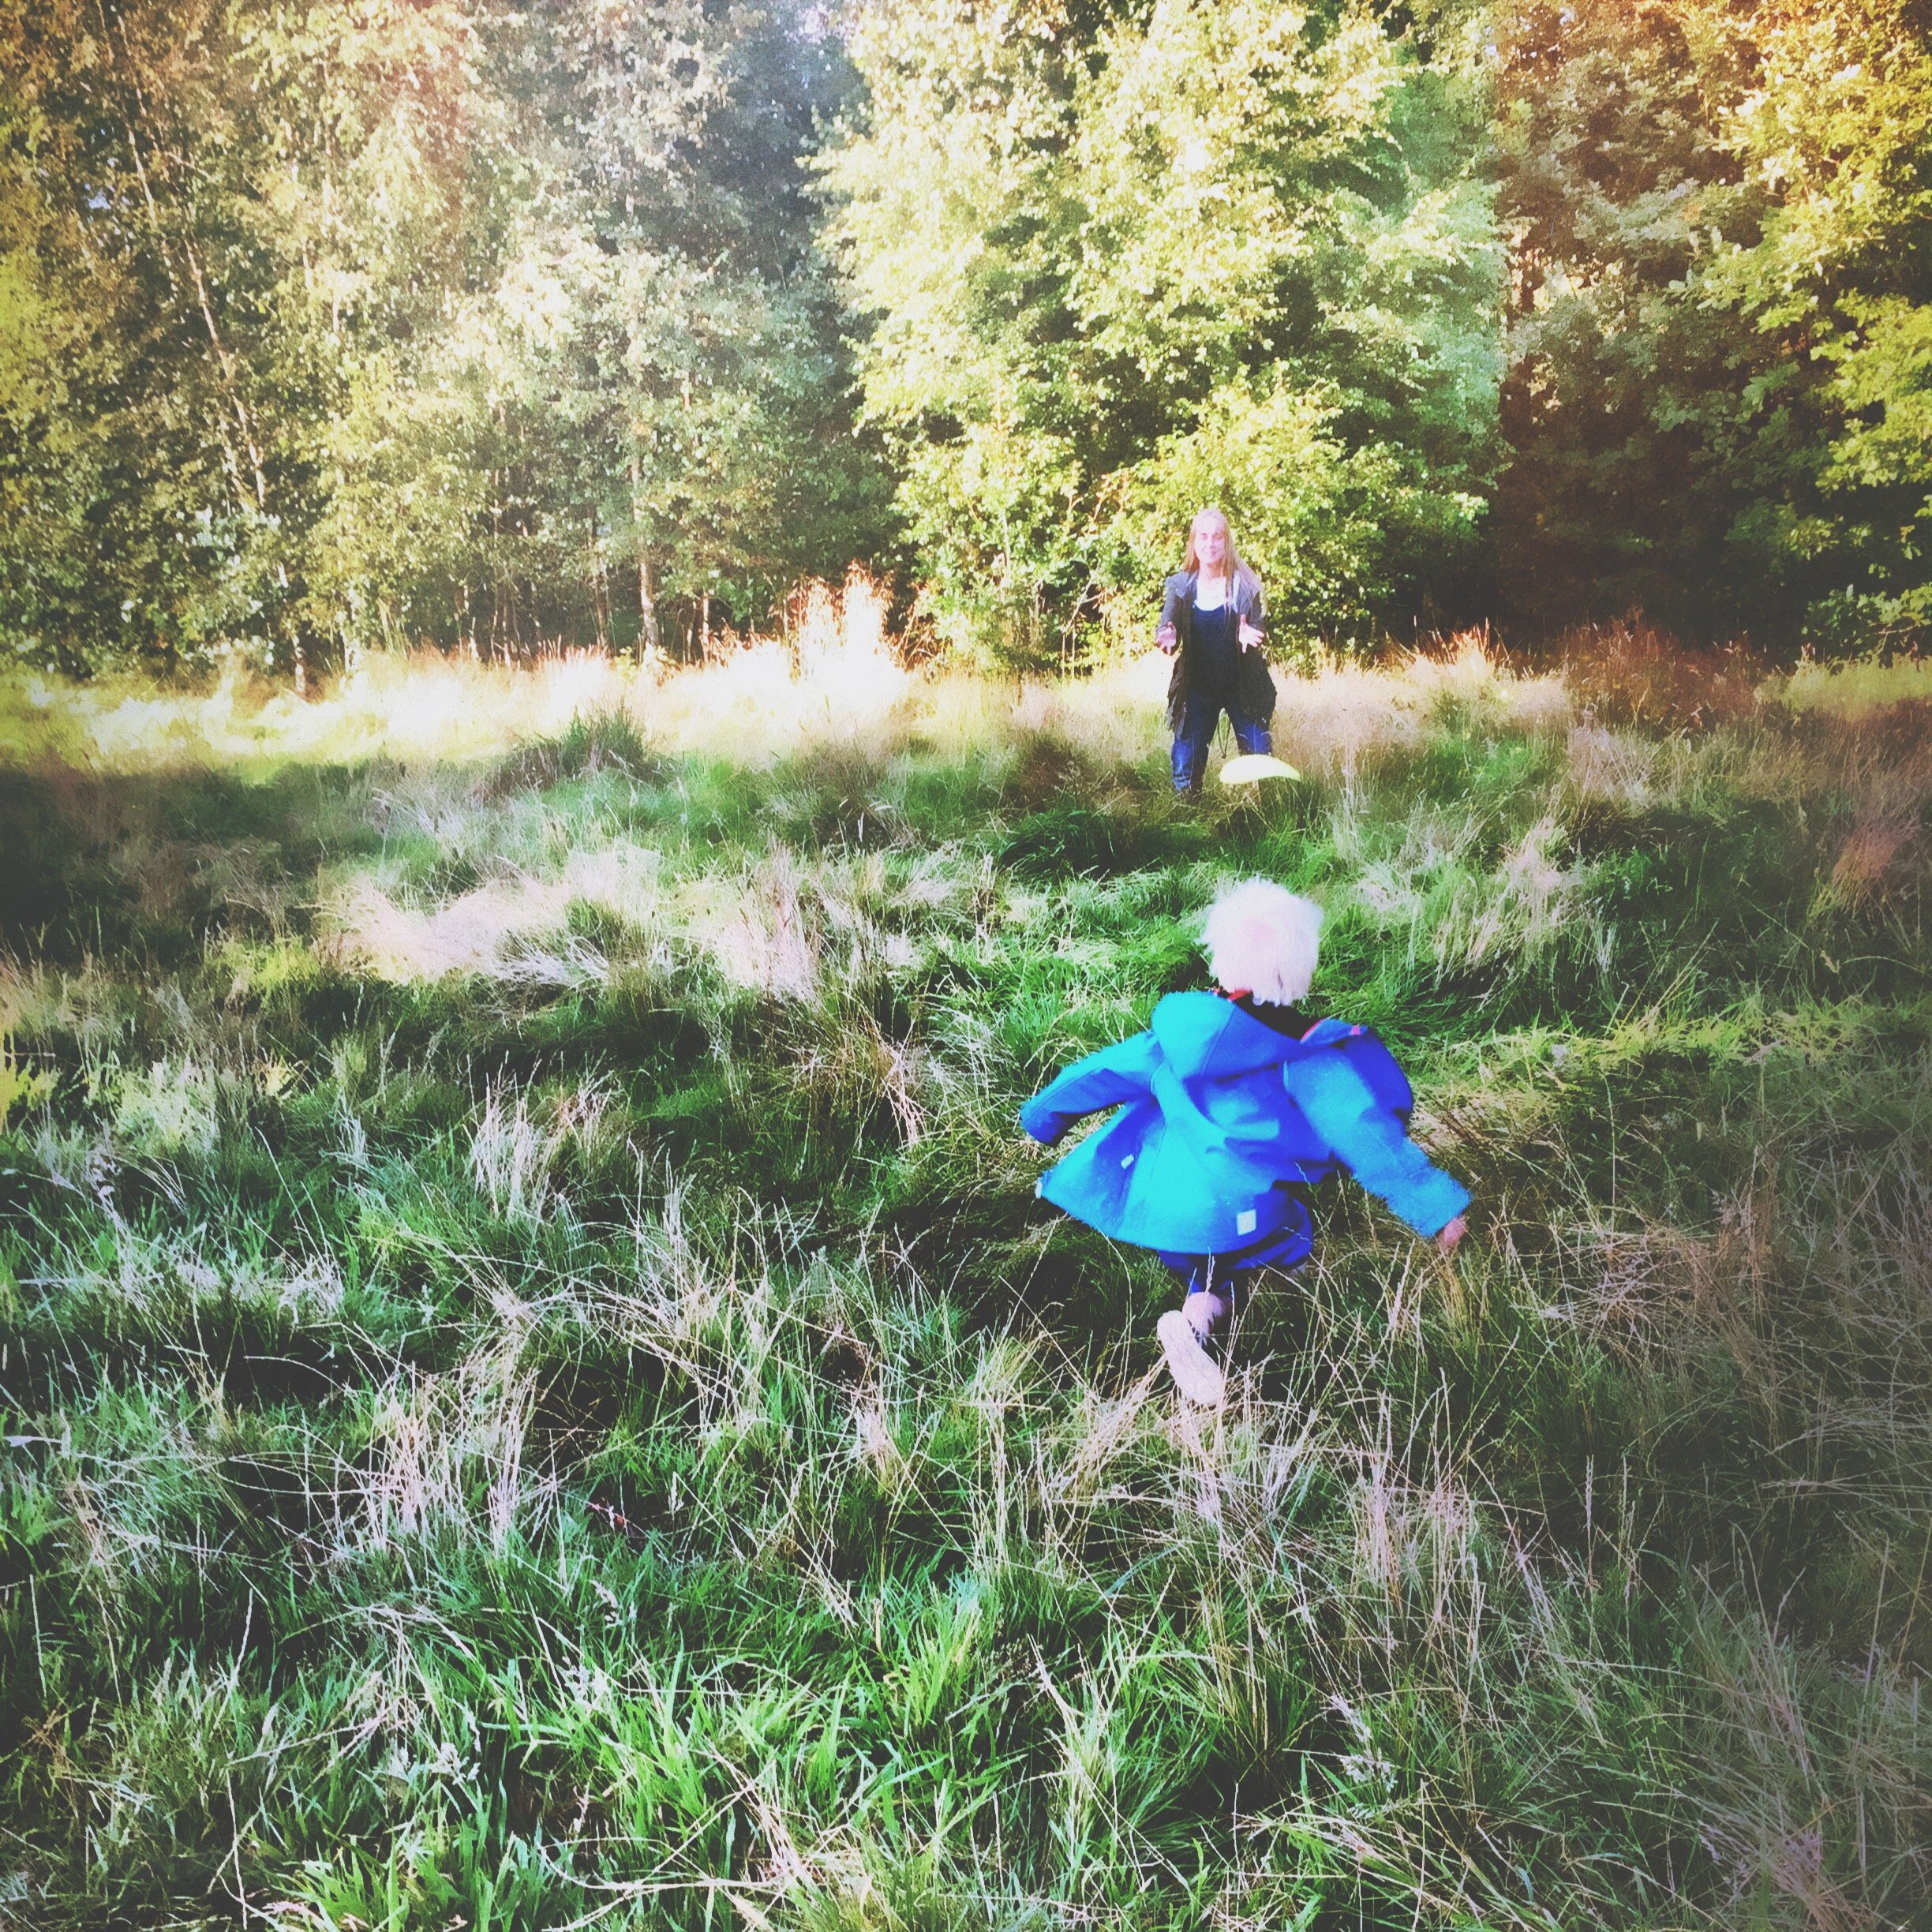 ways to exercise with the kids, encouraging kids to exercise with you, how to fit exercise into family life, easy ways to burn off calories playing with the kids